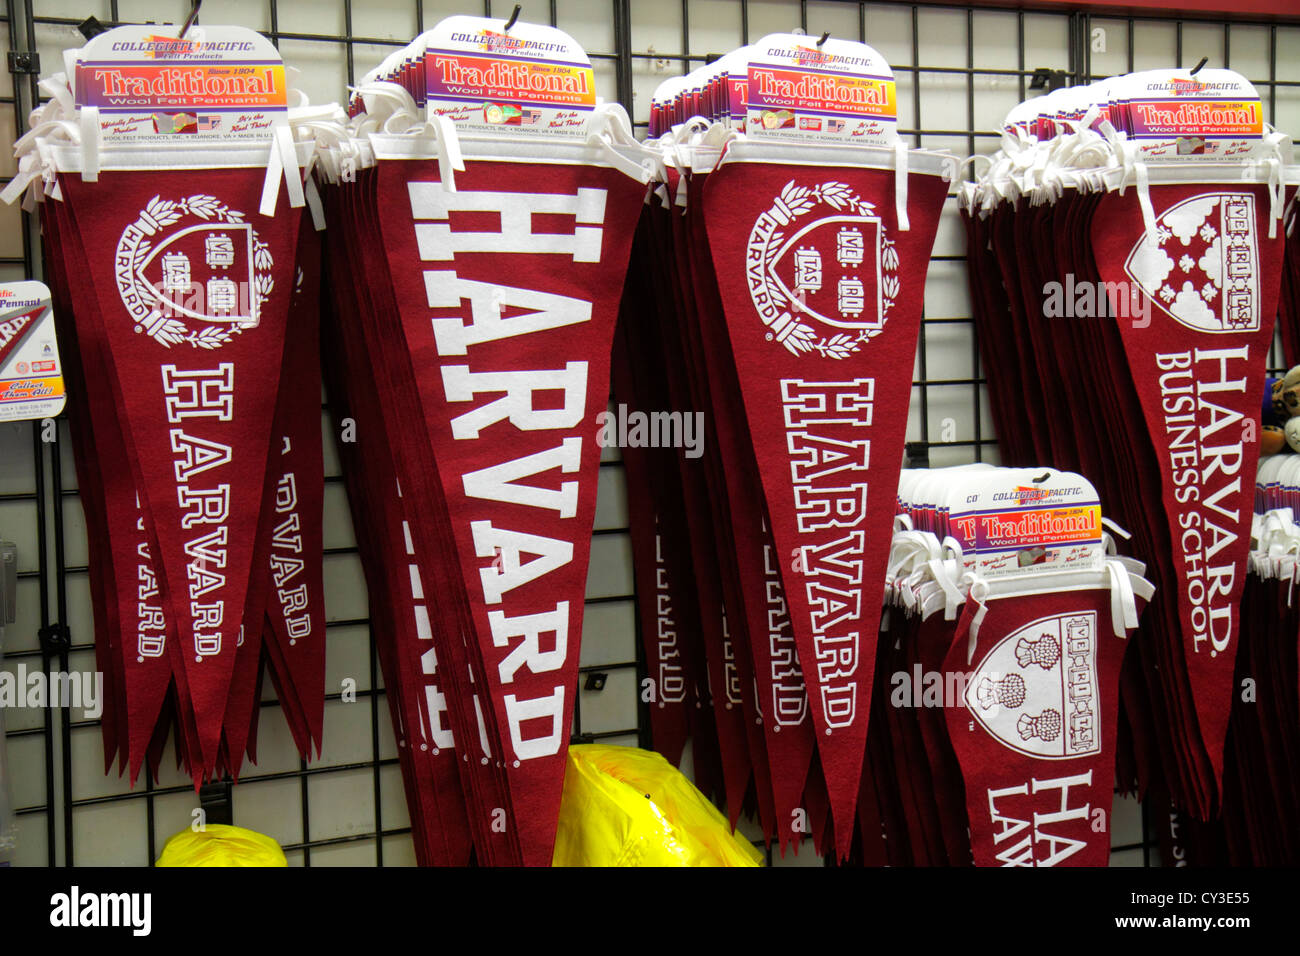 Boston Massachusetts Cambridge Harvard Square flags banners for sale souvenir - Stock Image